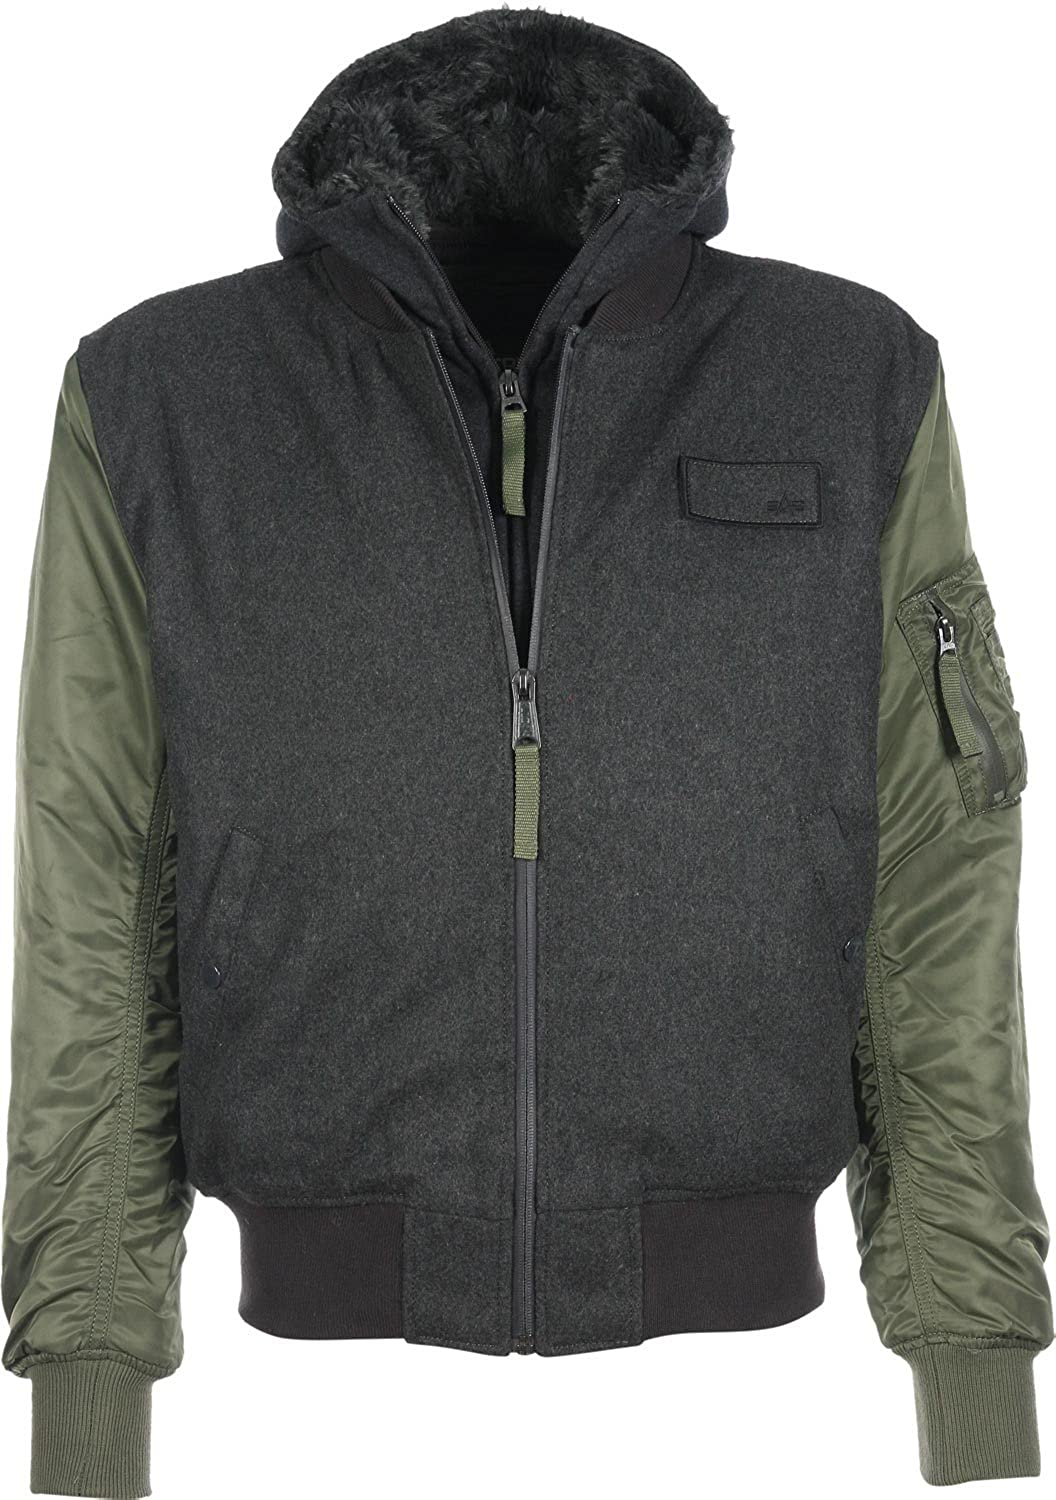 "Alpha Industries Herren Fliegerjacke ""MA-1 D-TEC WOOL"" grey/green jetzt bestellen"